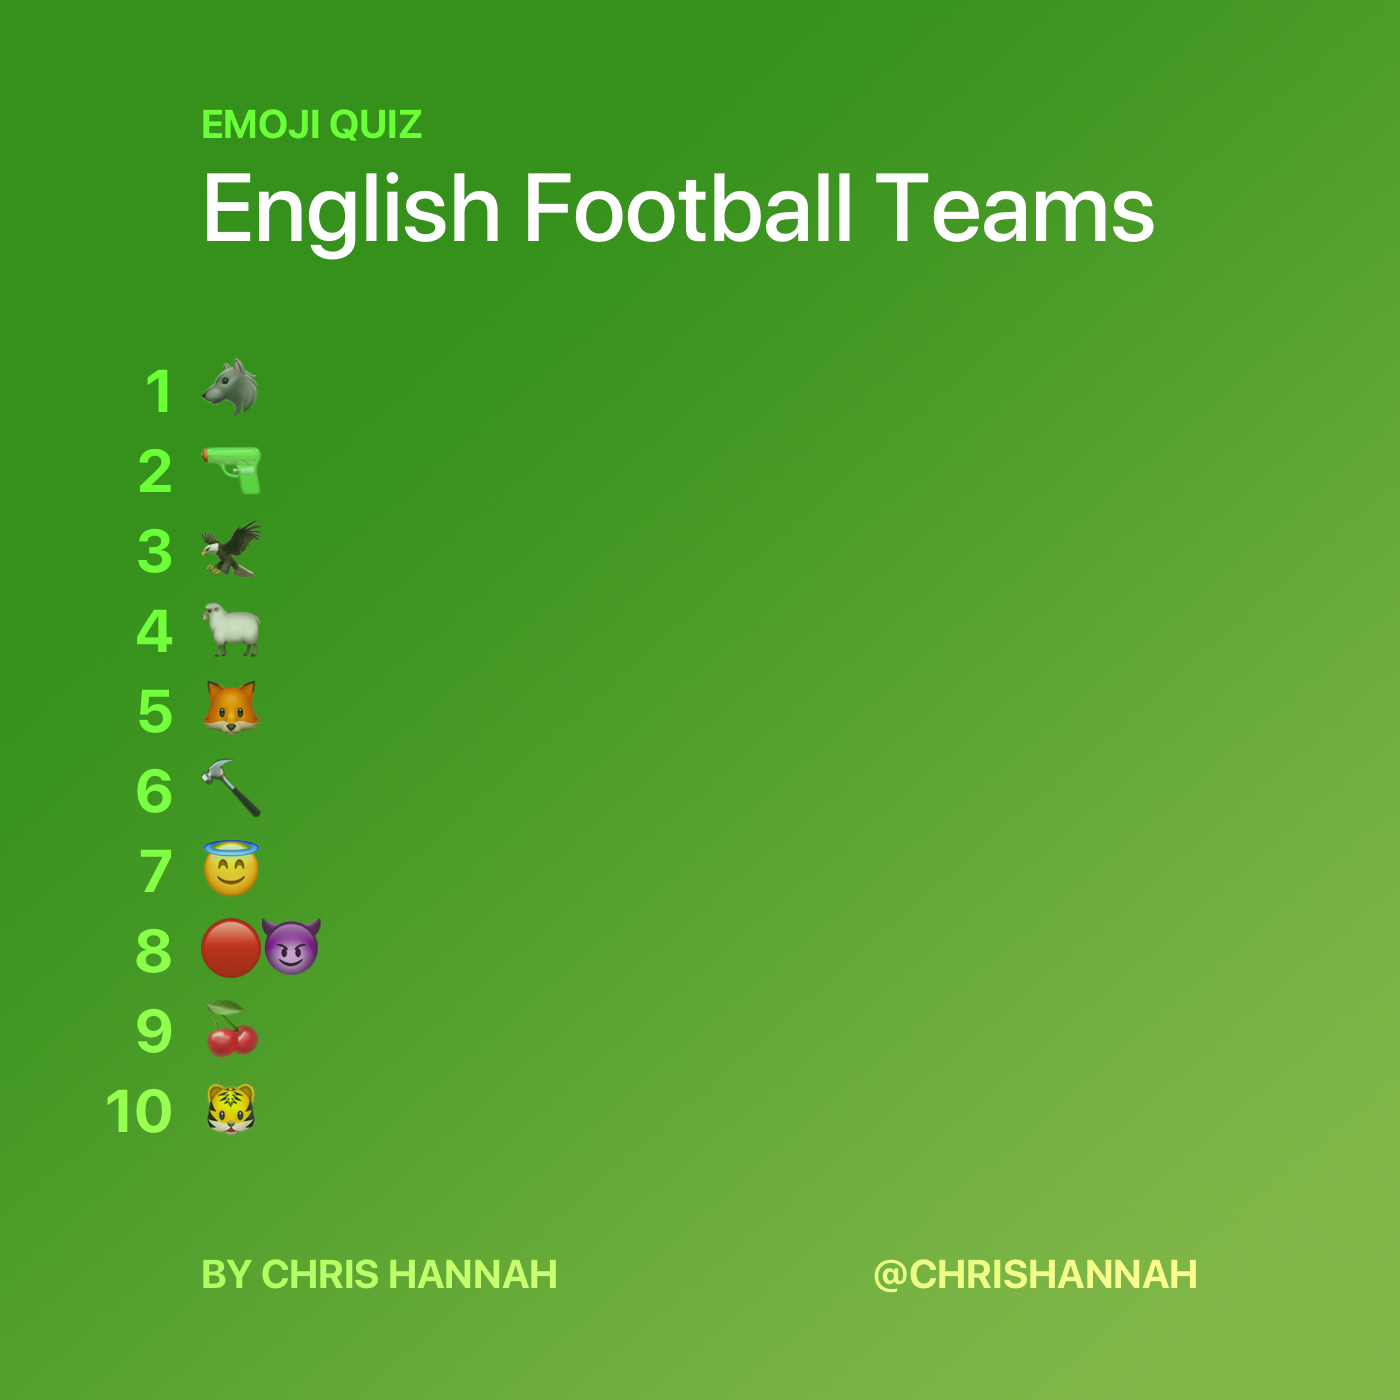 English Football Teams Quiz